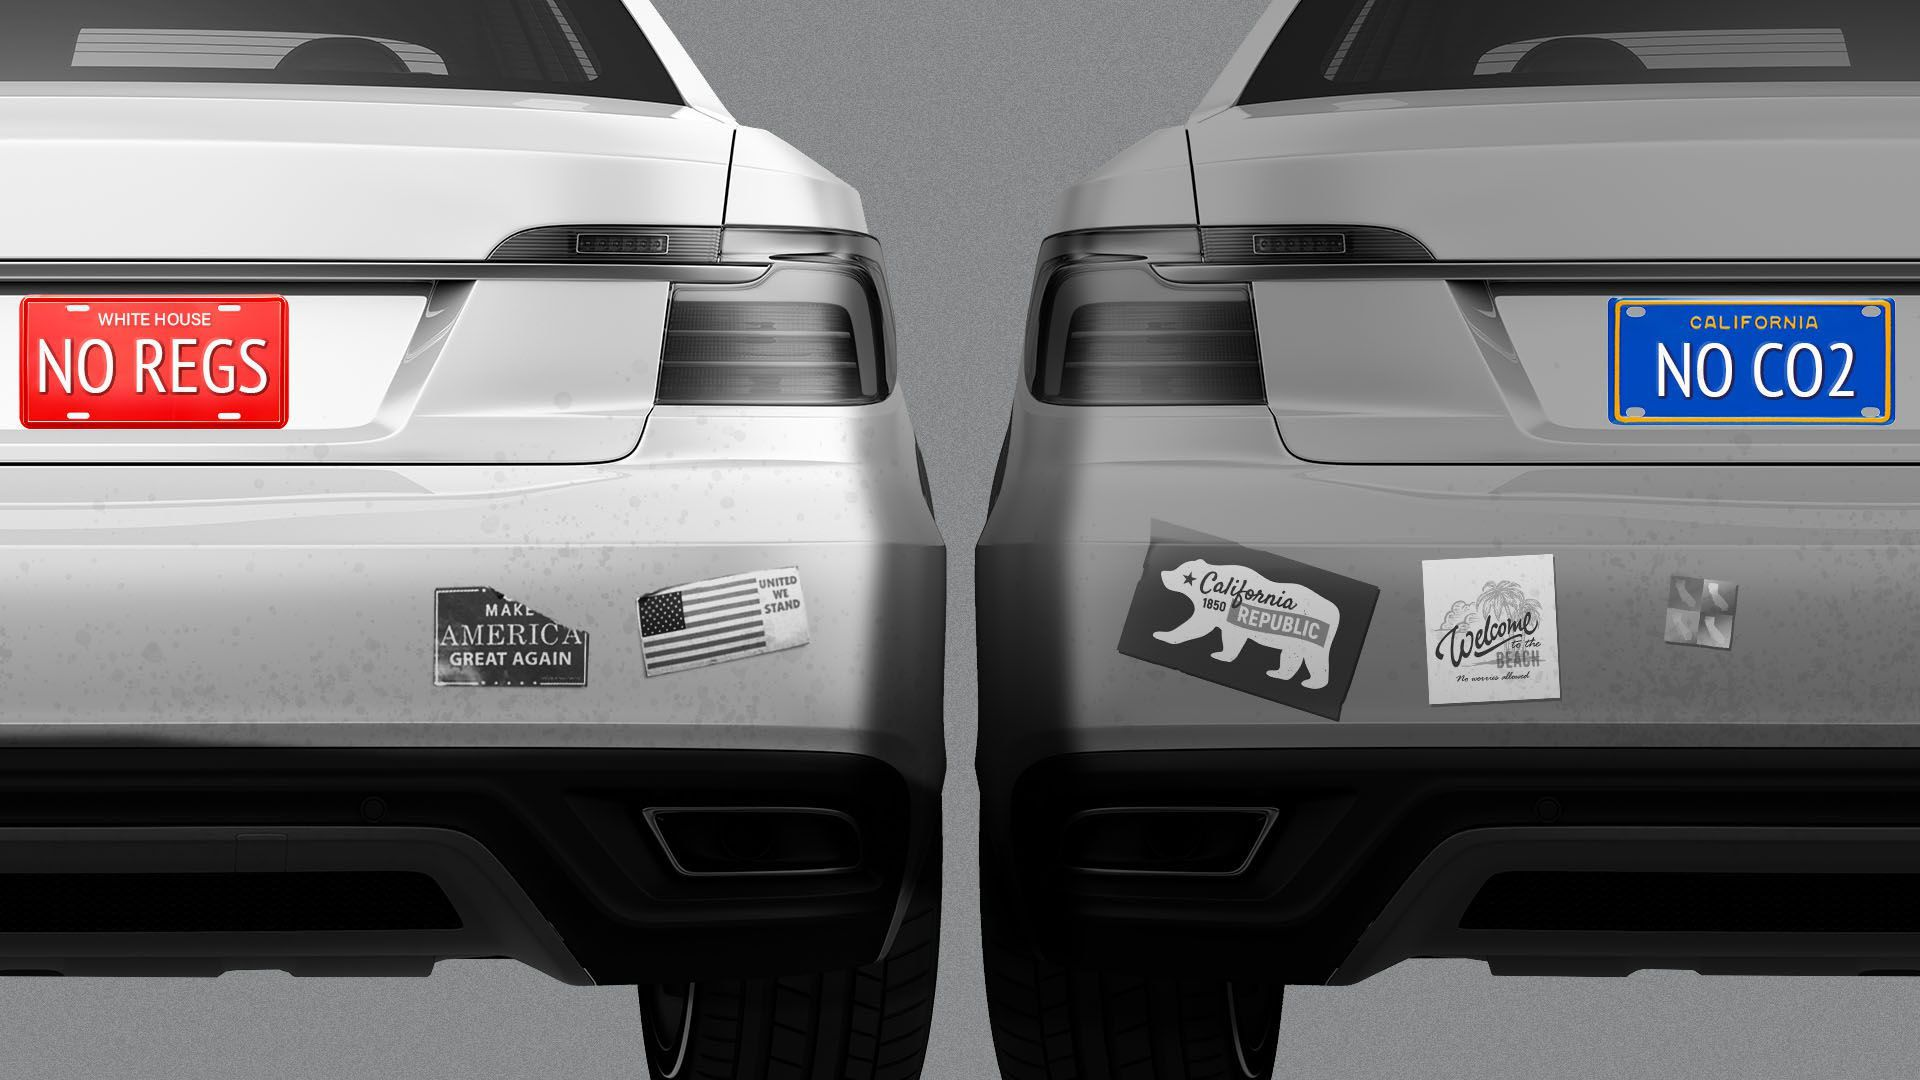 Illustration of two cars with varying bumper stickers arguing for or against carbon emissions and mileage rules